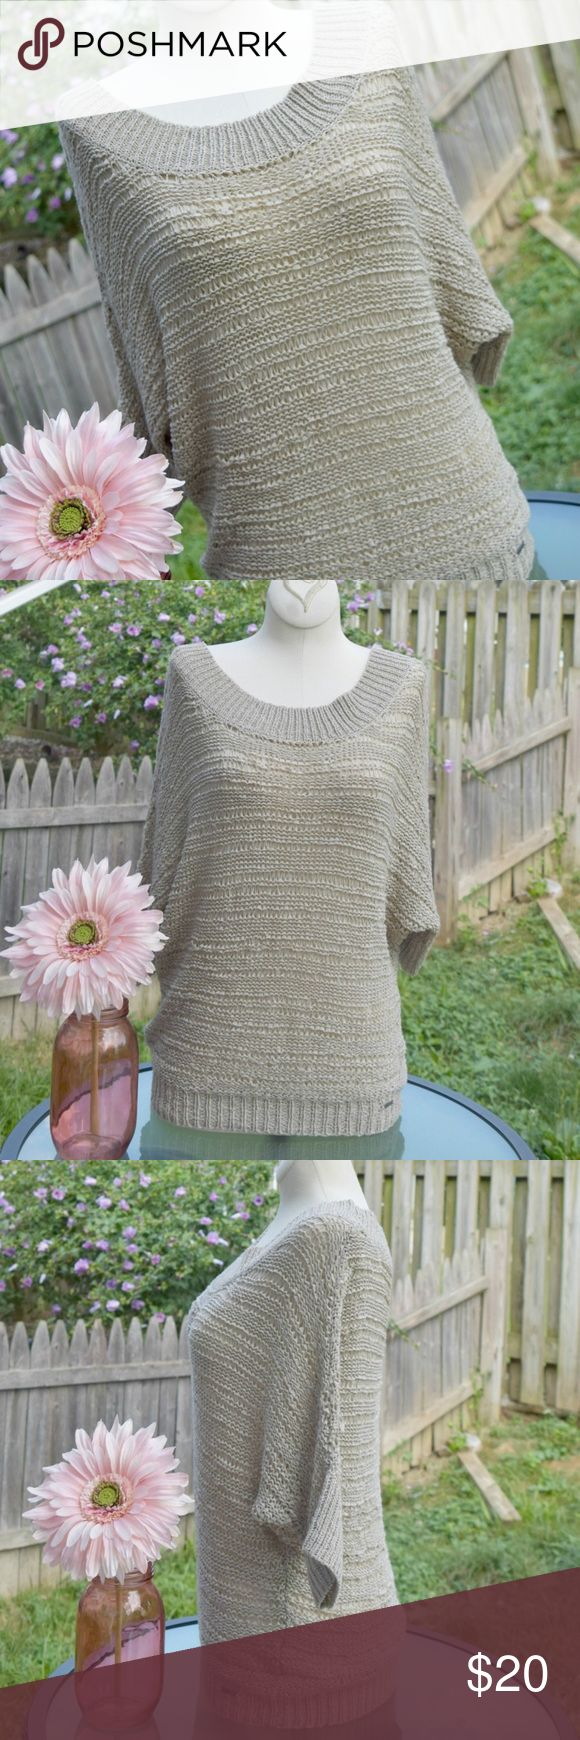 Hang Ten short dolman sleeve sweater This sweater is adorable and lightweight!  The open knit makes this semi see through, but makes it a great top to wear over a tank or cami. Short, dolman sleeves and scoop neck. Great neutral color. Brand new, never worn. Size large. Tops Blouses